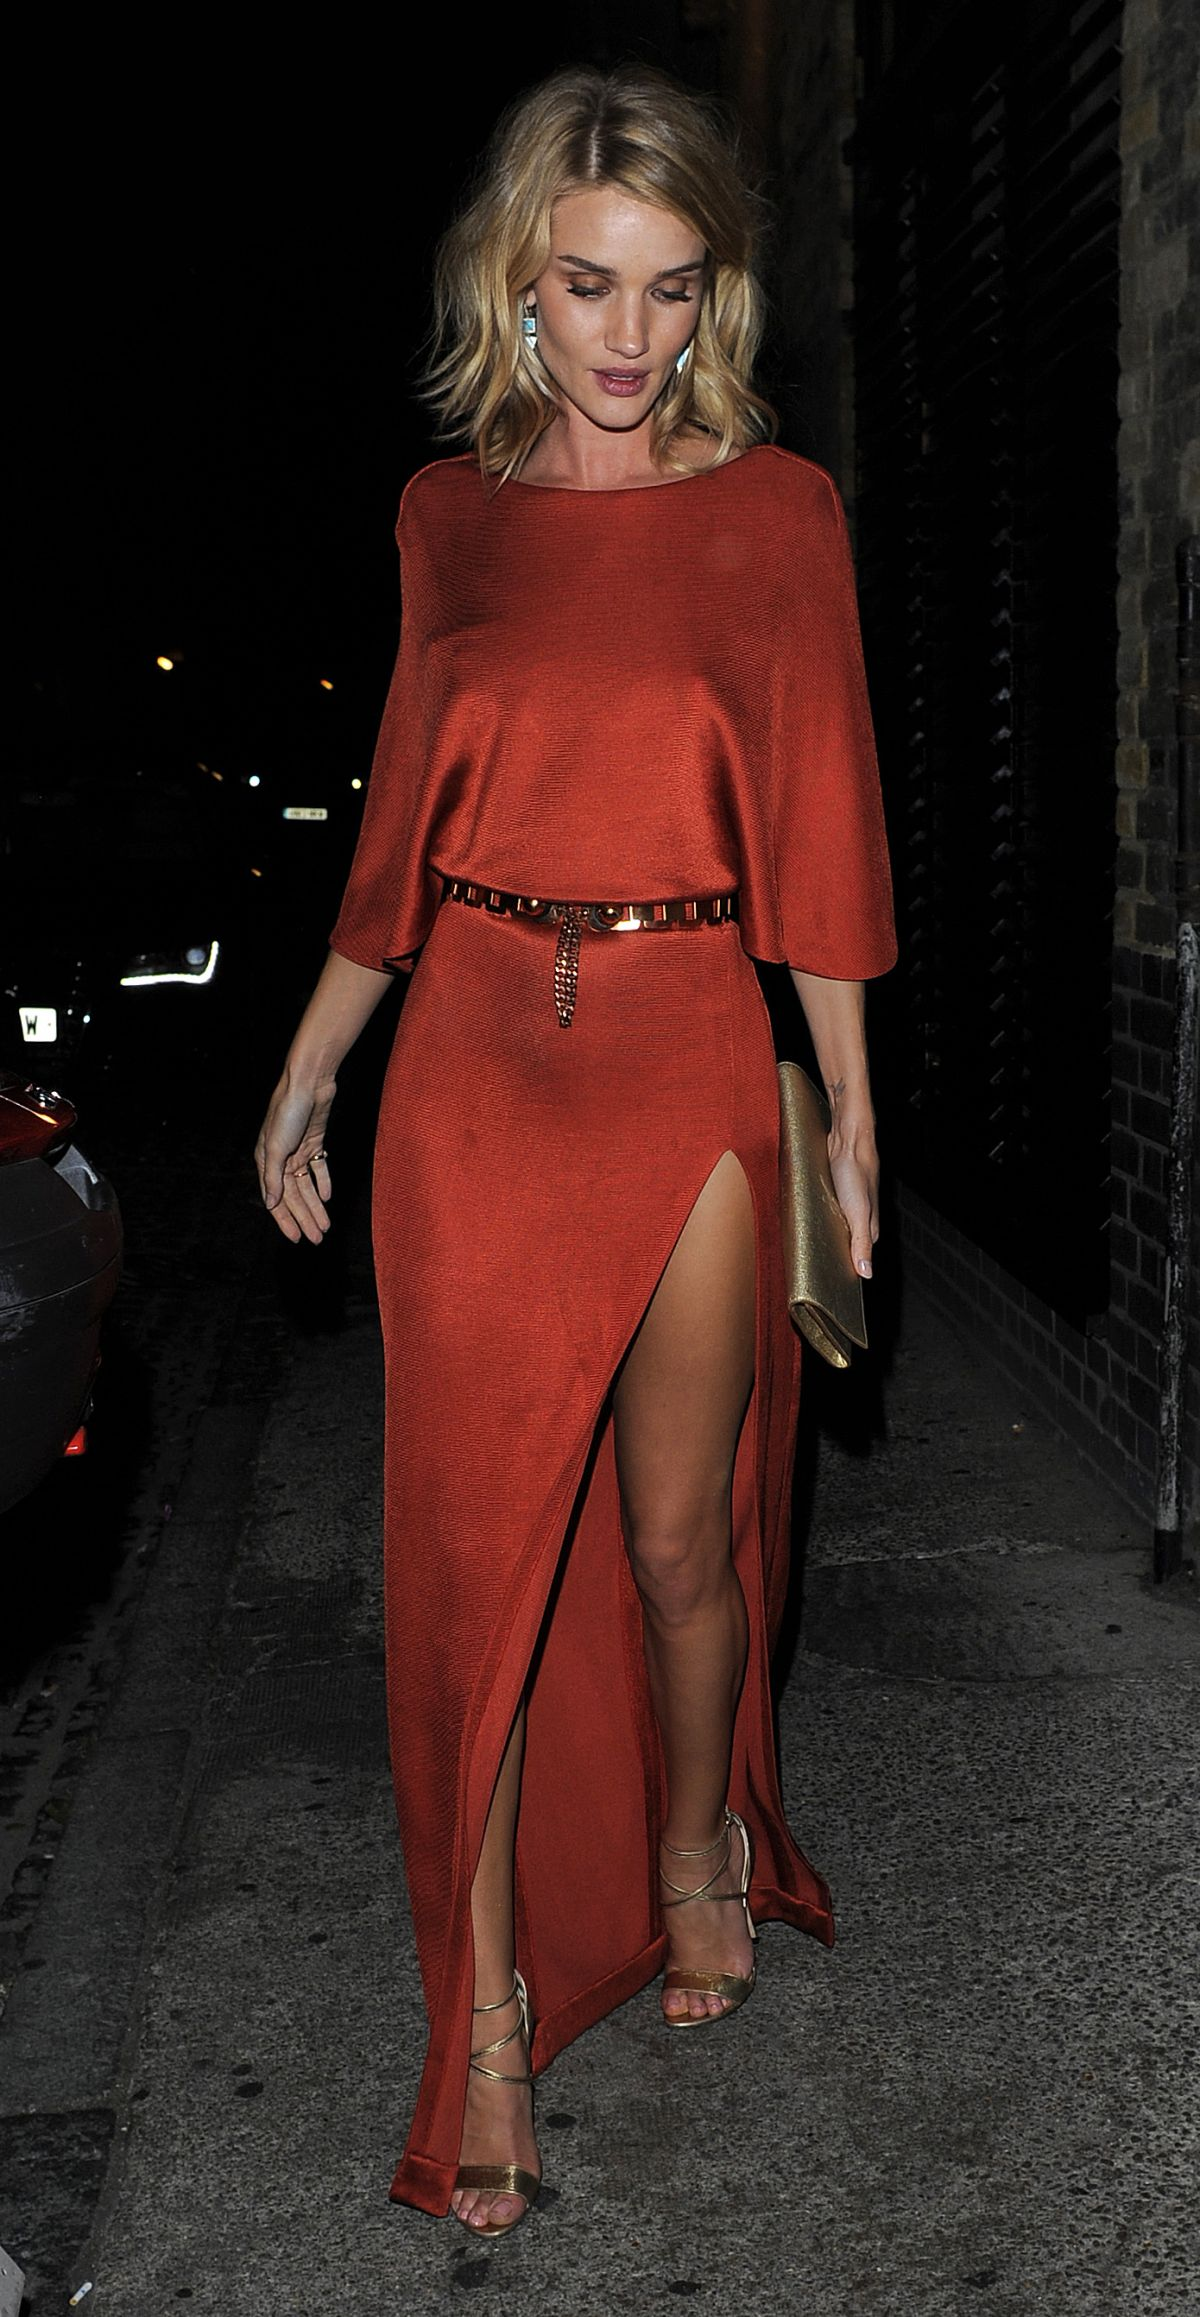 ROSIE HUNTINGTON-WHITELEY Arrives at Chiltern Firehouse in London